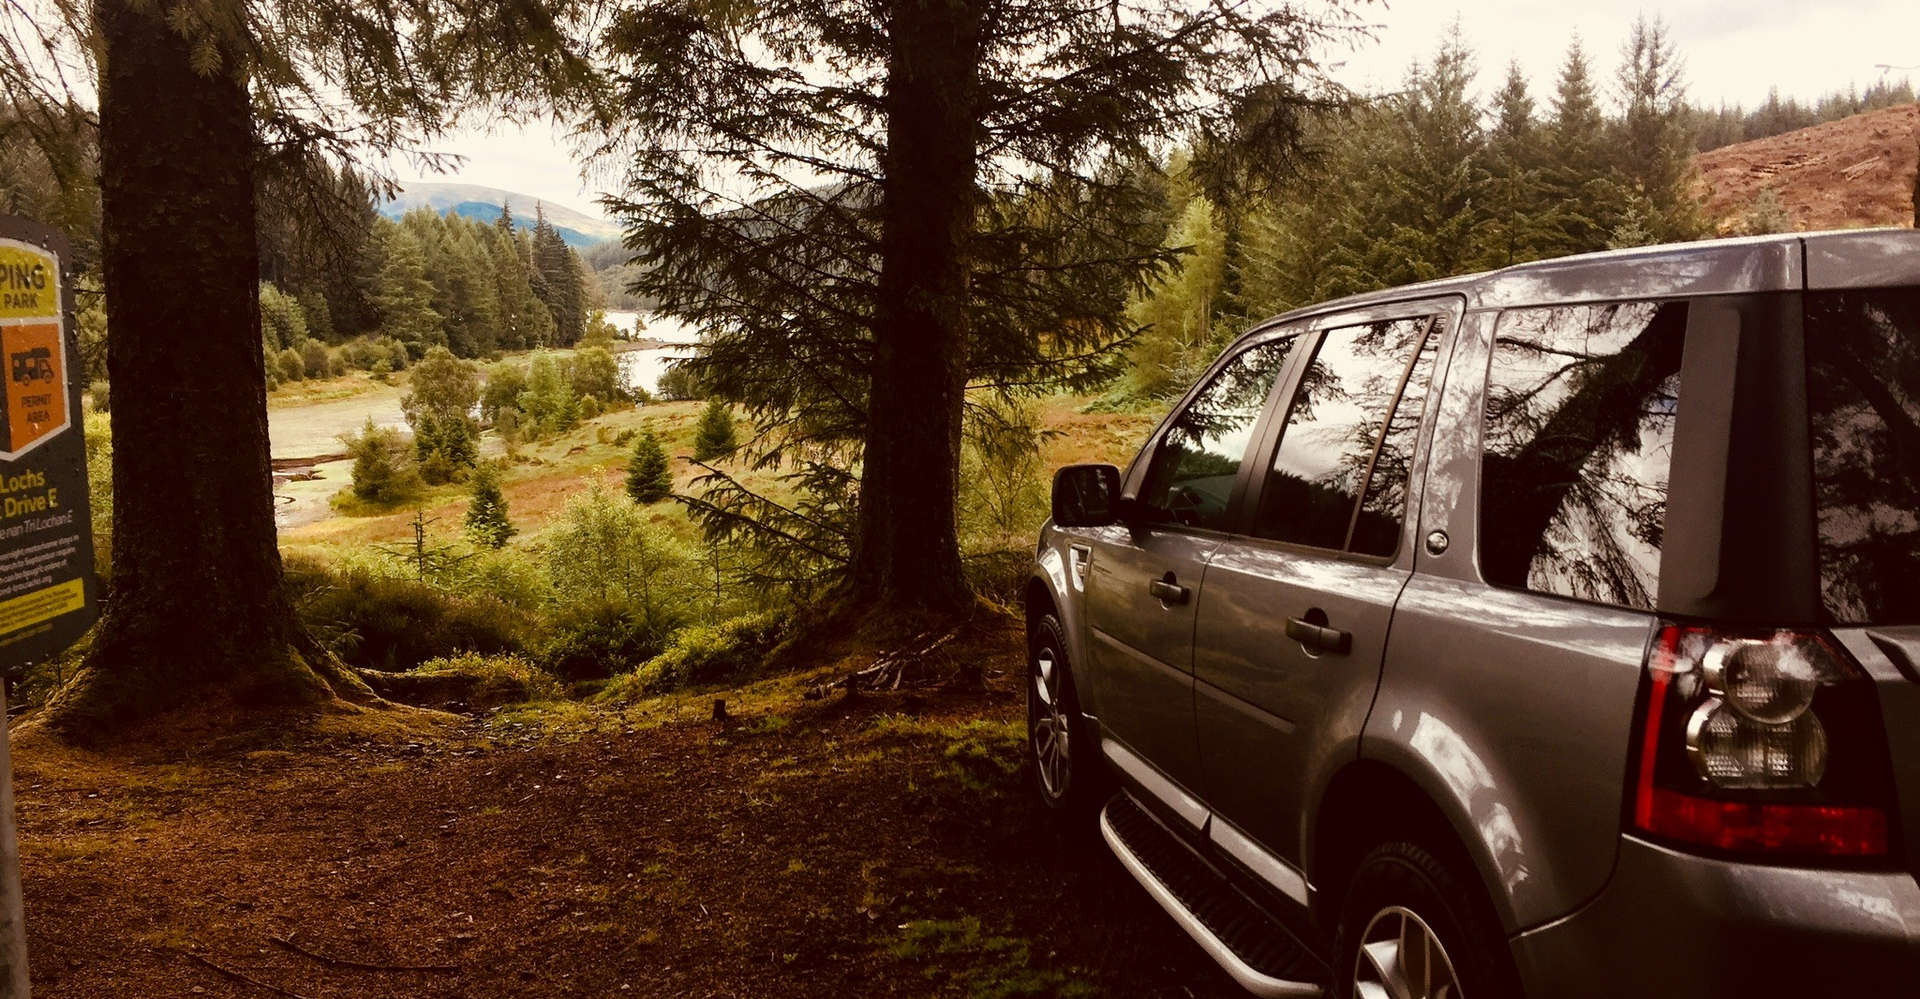 luxury private vehicle off road on a tour in scotland's national park